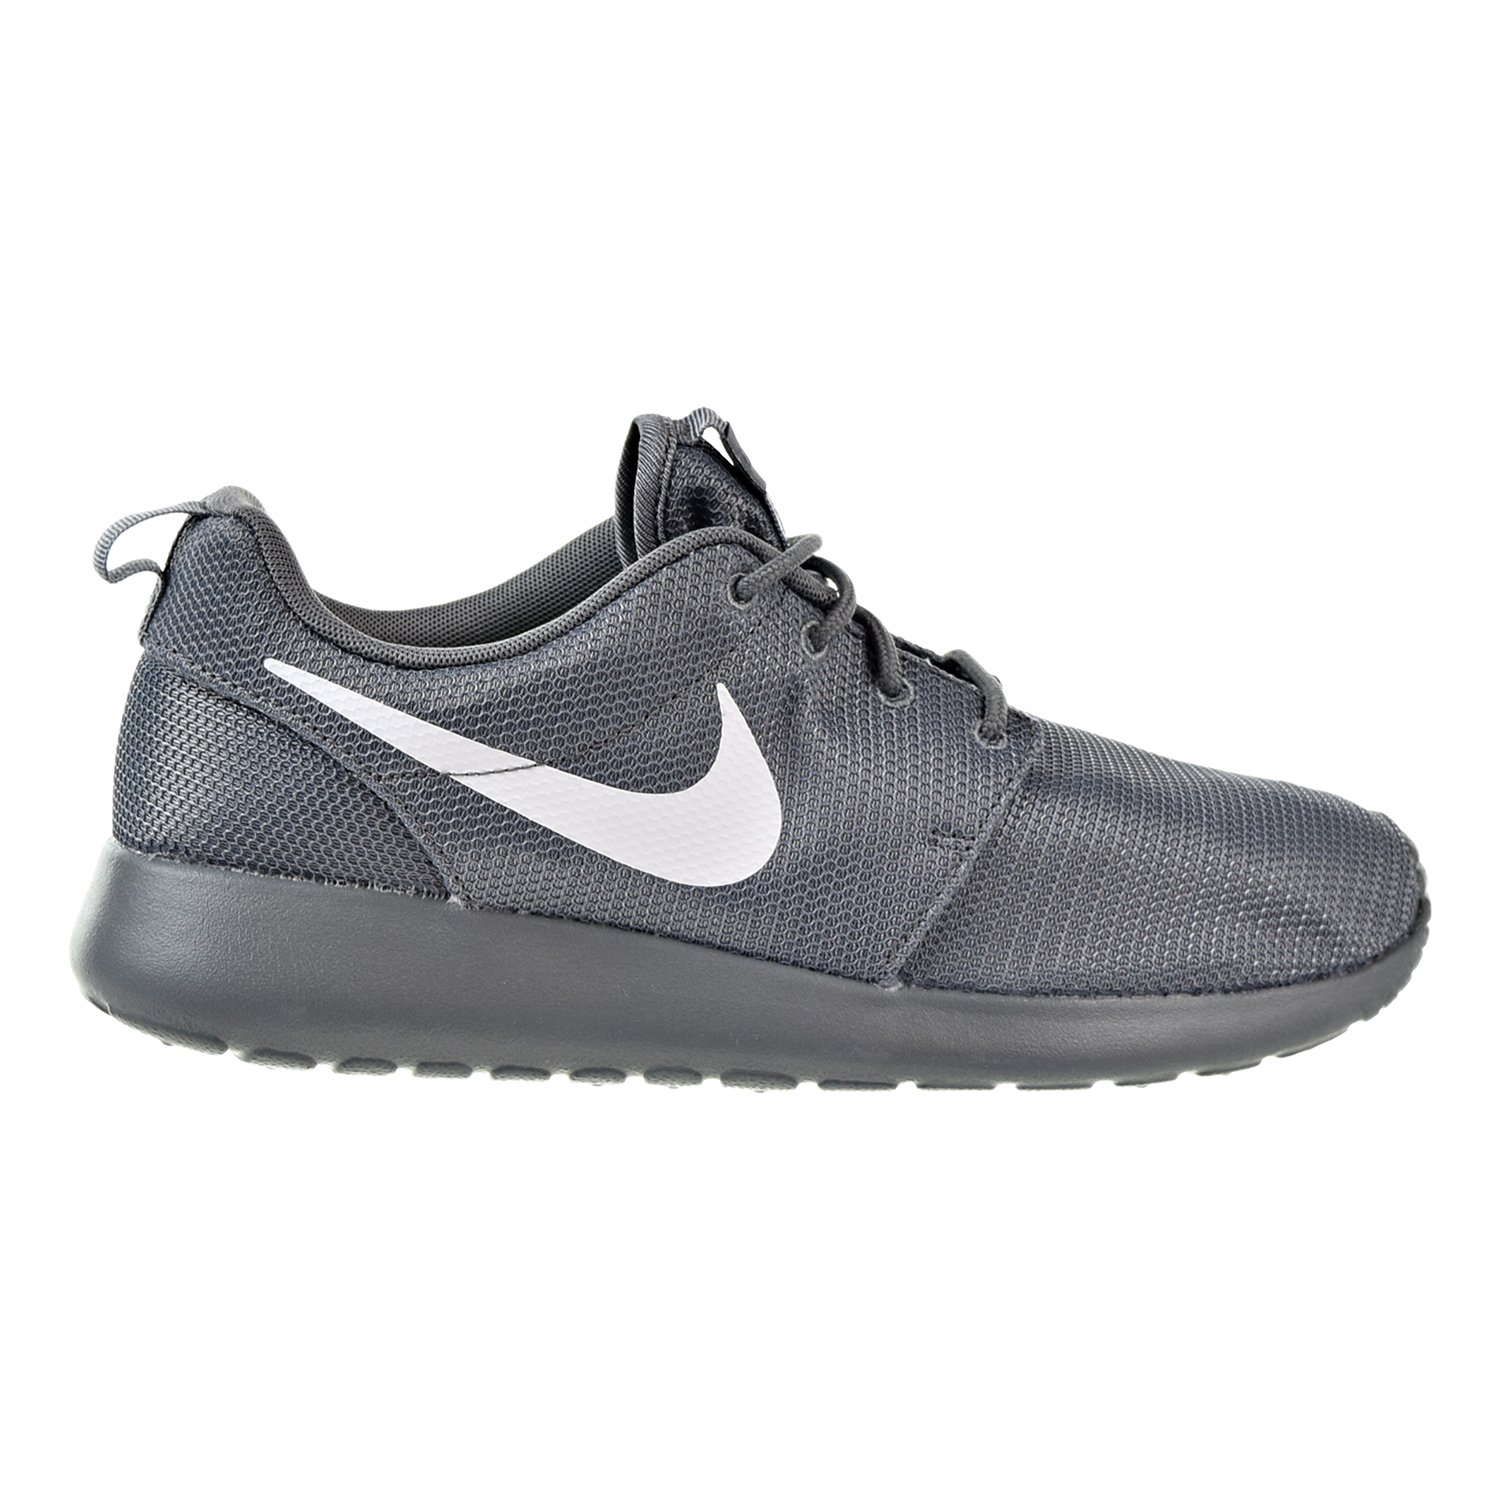 52c6bdf0c860 NIKE Wmns Nike Rosherun Womens Running Shoes  Amazon.co.uk  Shoes   Bags